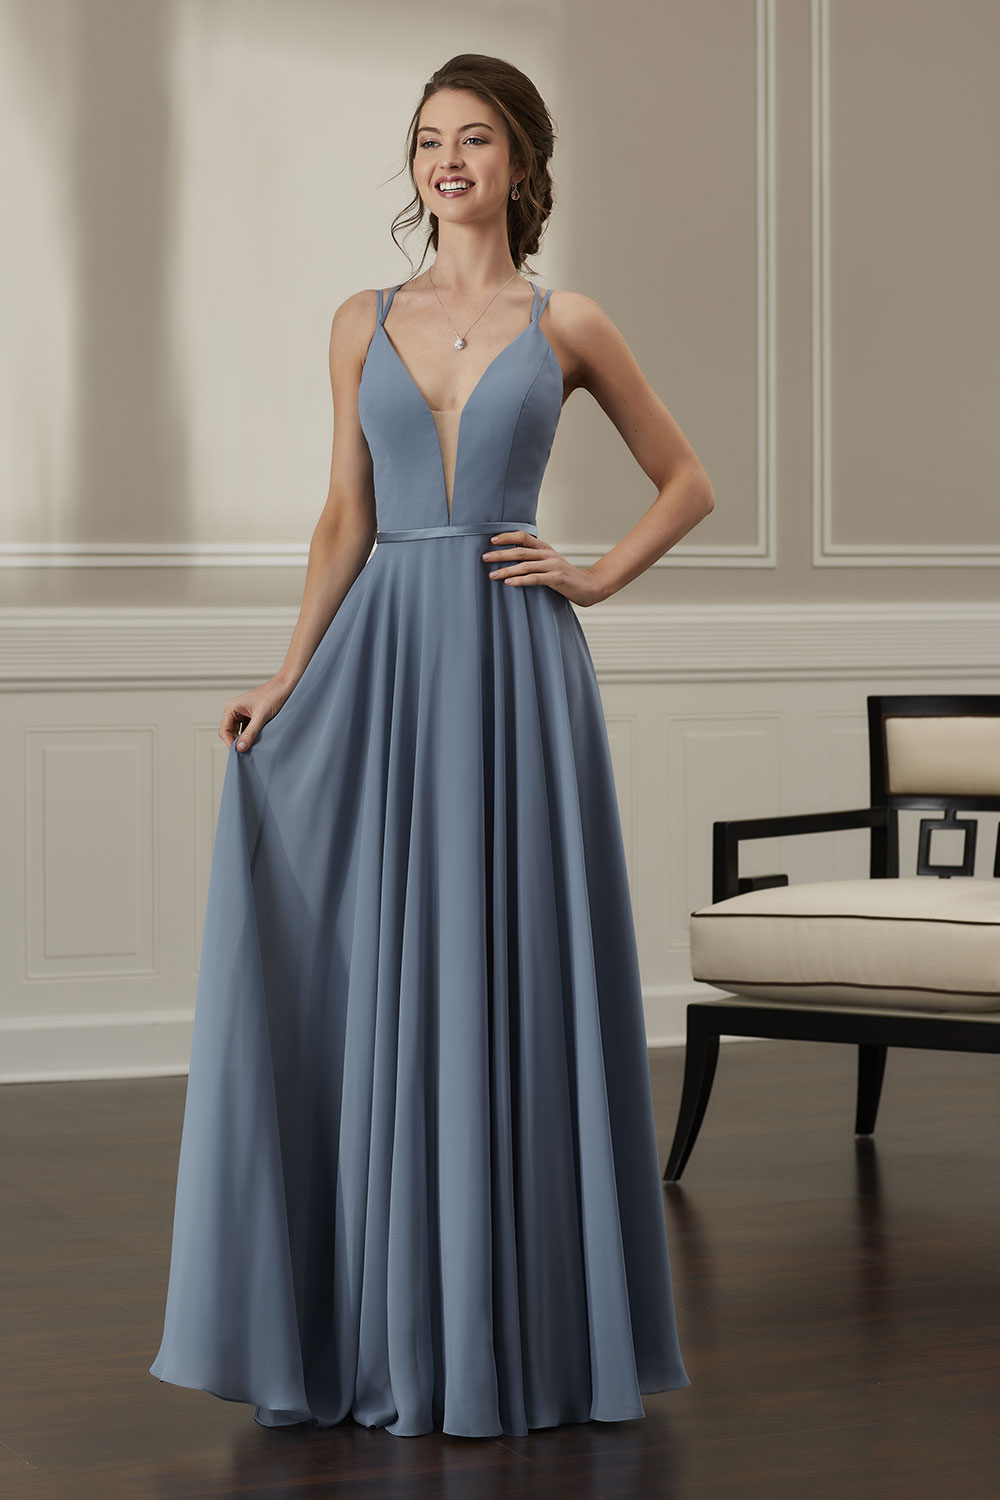 bridesmaid-dresses-jacquelin-bridals-canada-26840